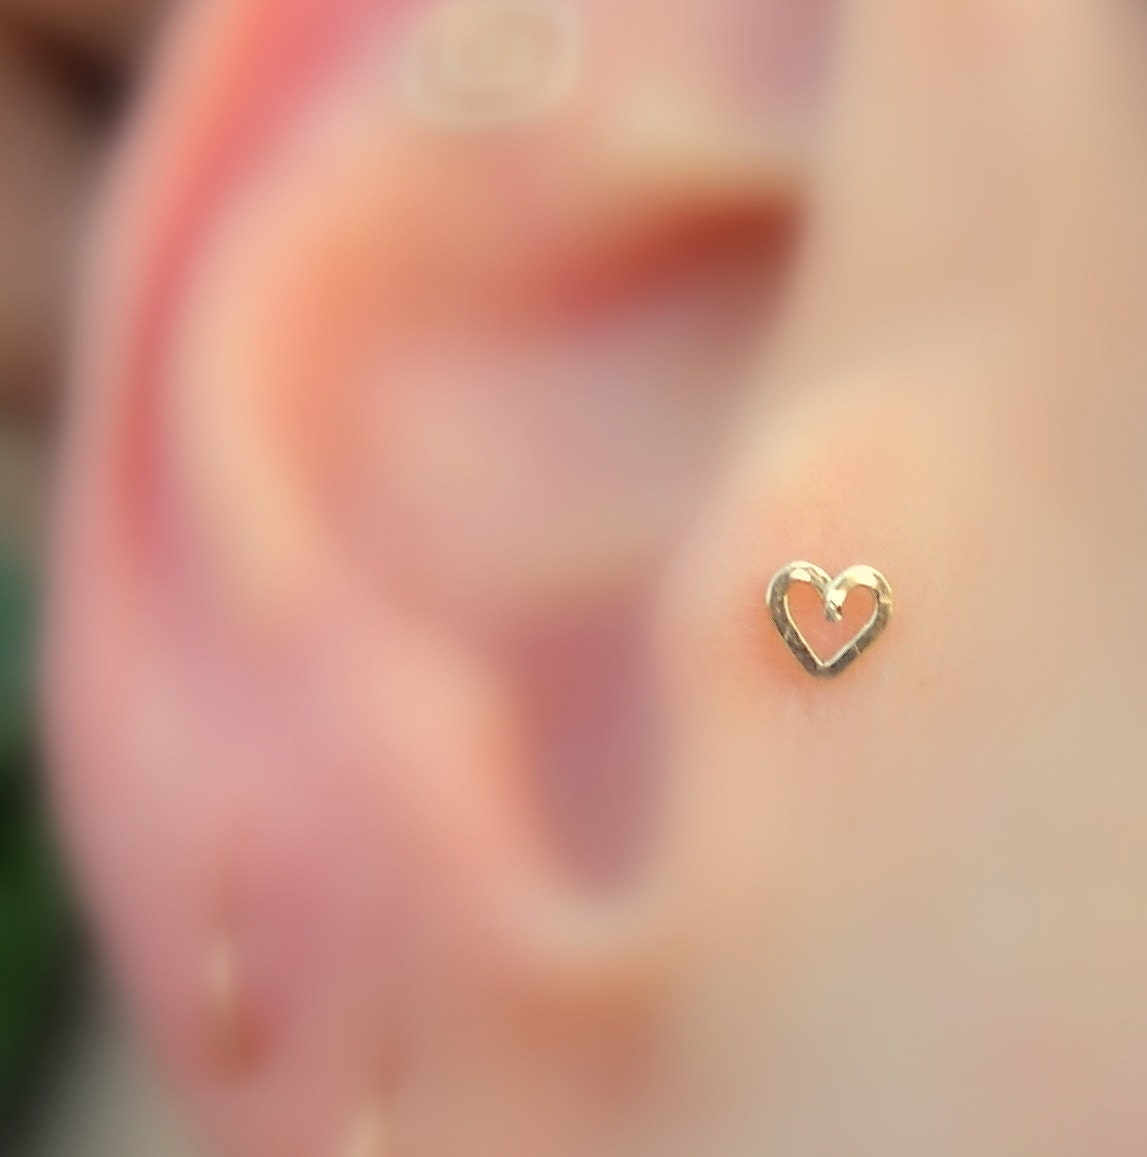 Tragus Earring Nose Ring Stud Cartilage Earring 14K Solid